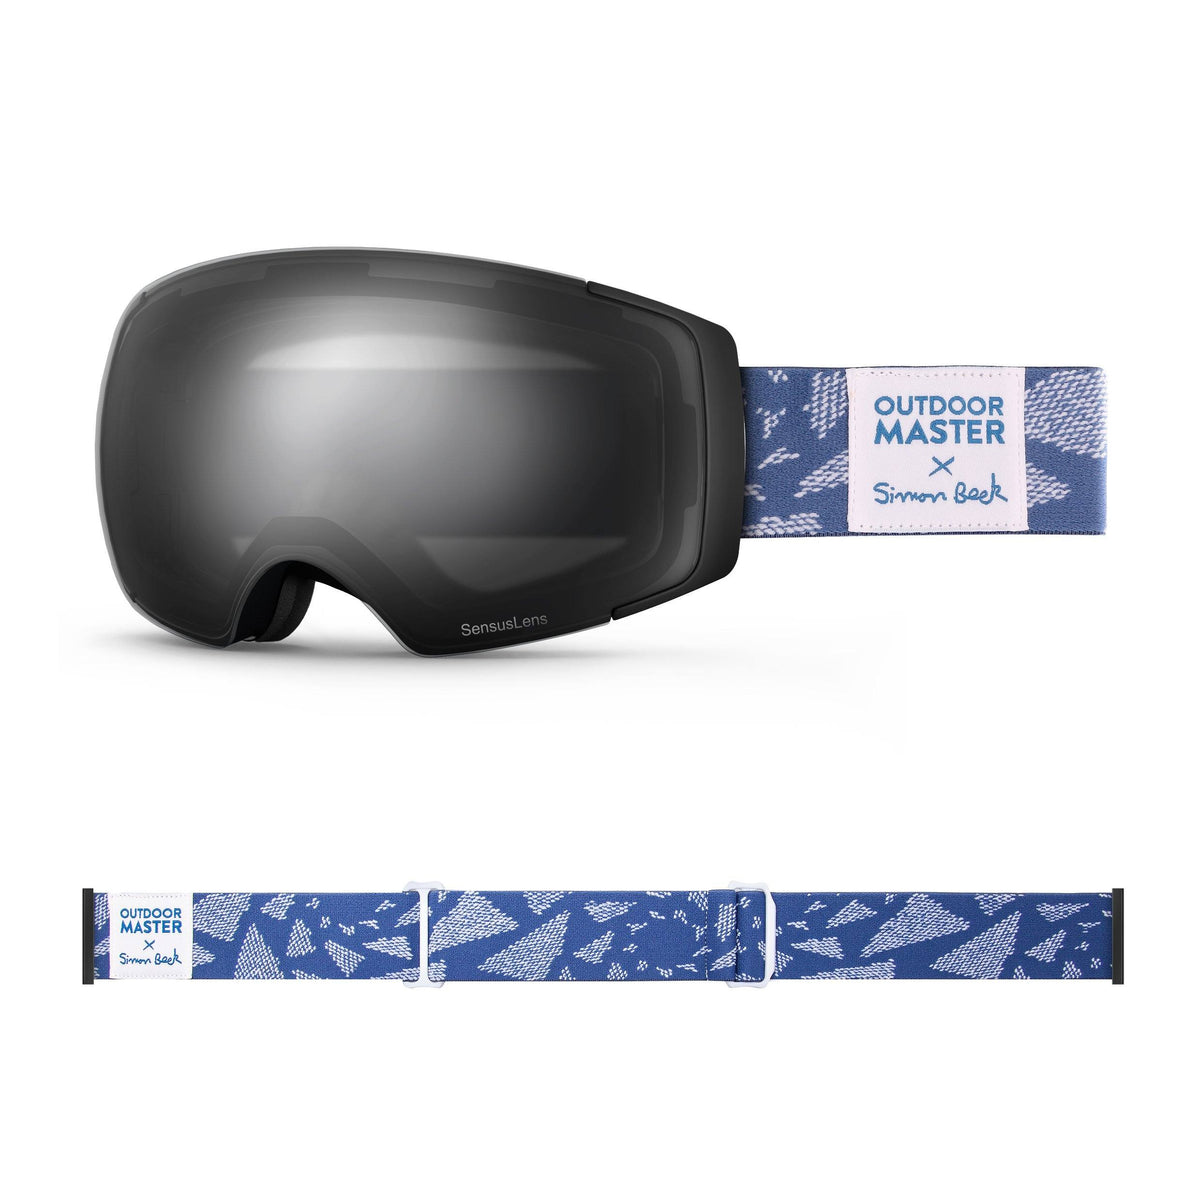 OutdoorMaster x Simon Beck Ski Goggles Pro Series - Snowshoeing Art Limited Edition OutdoorMaster SensusLens VLT 16-80% Photochromatic clear to Grey Flying Triangles